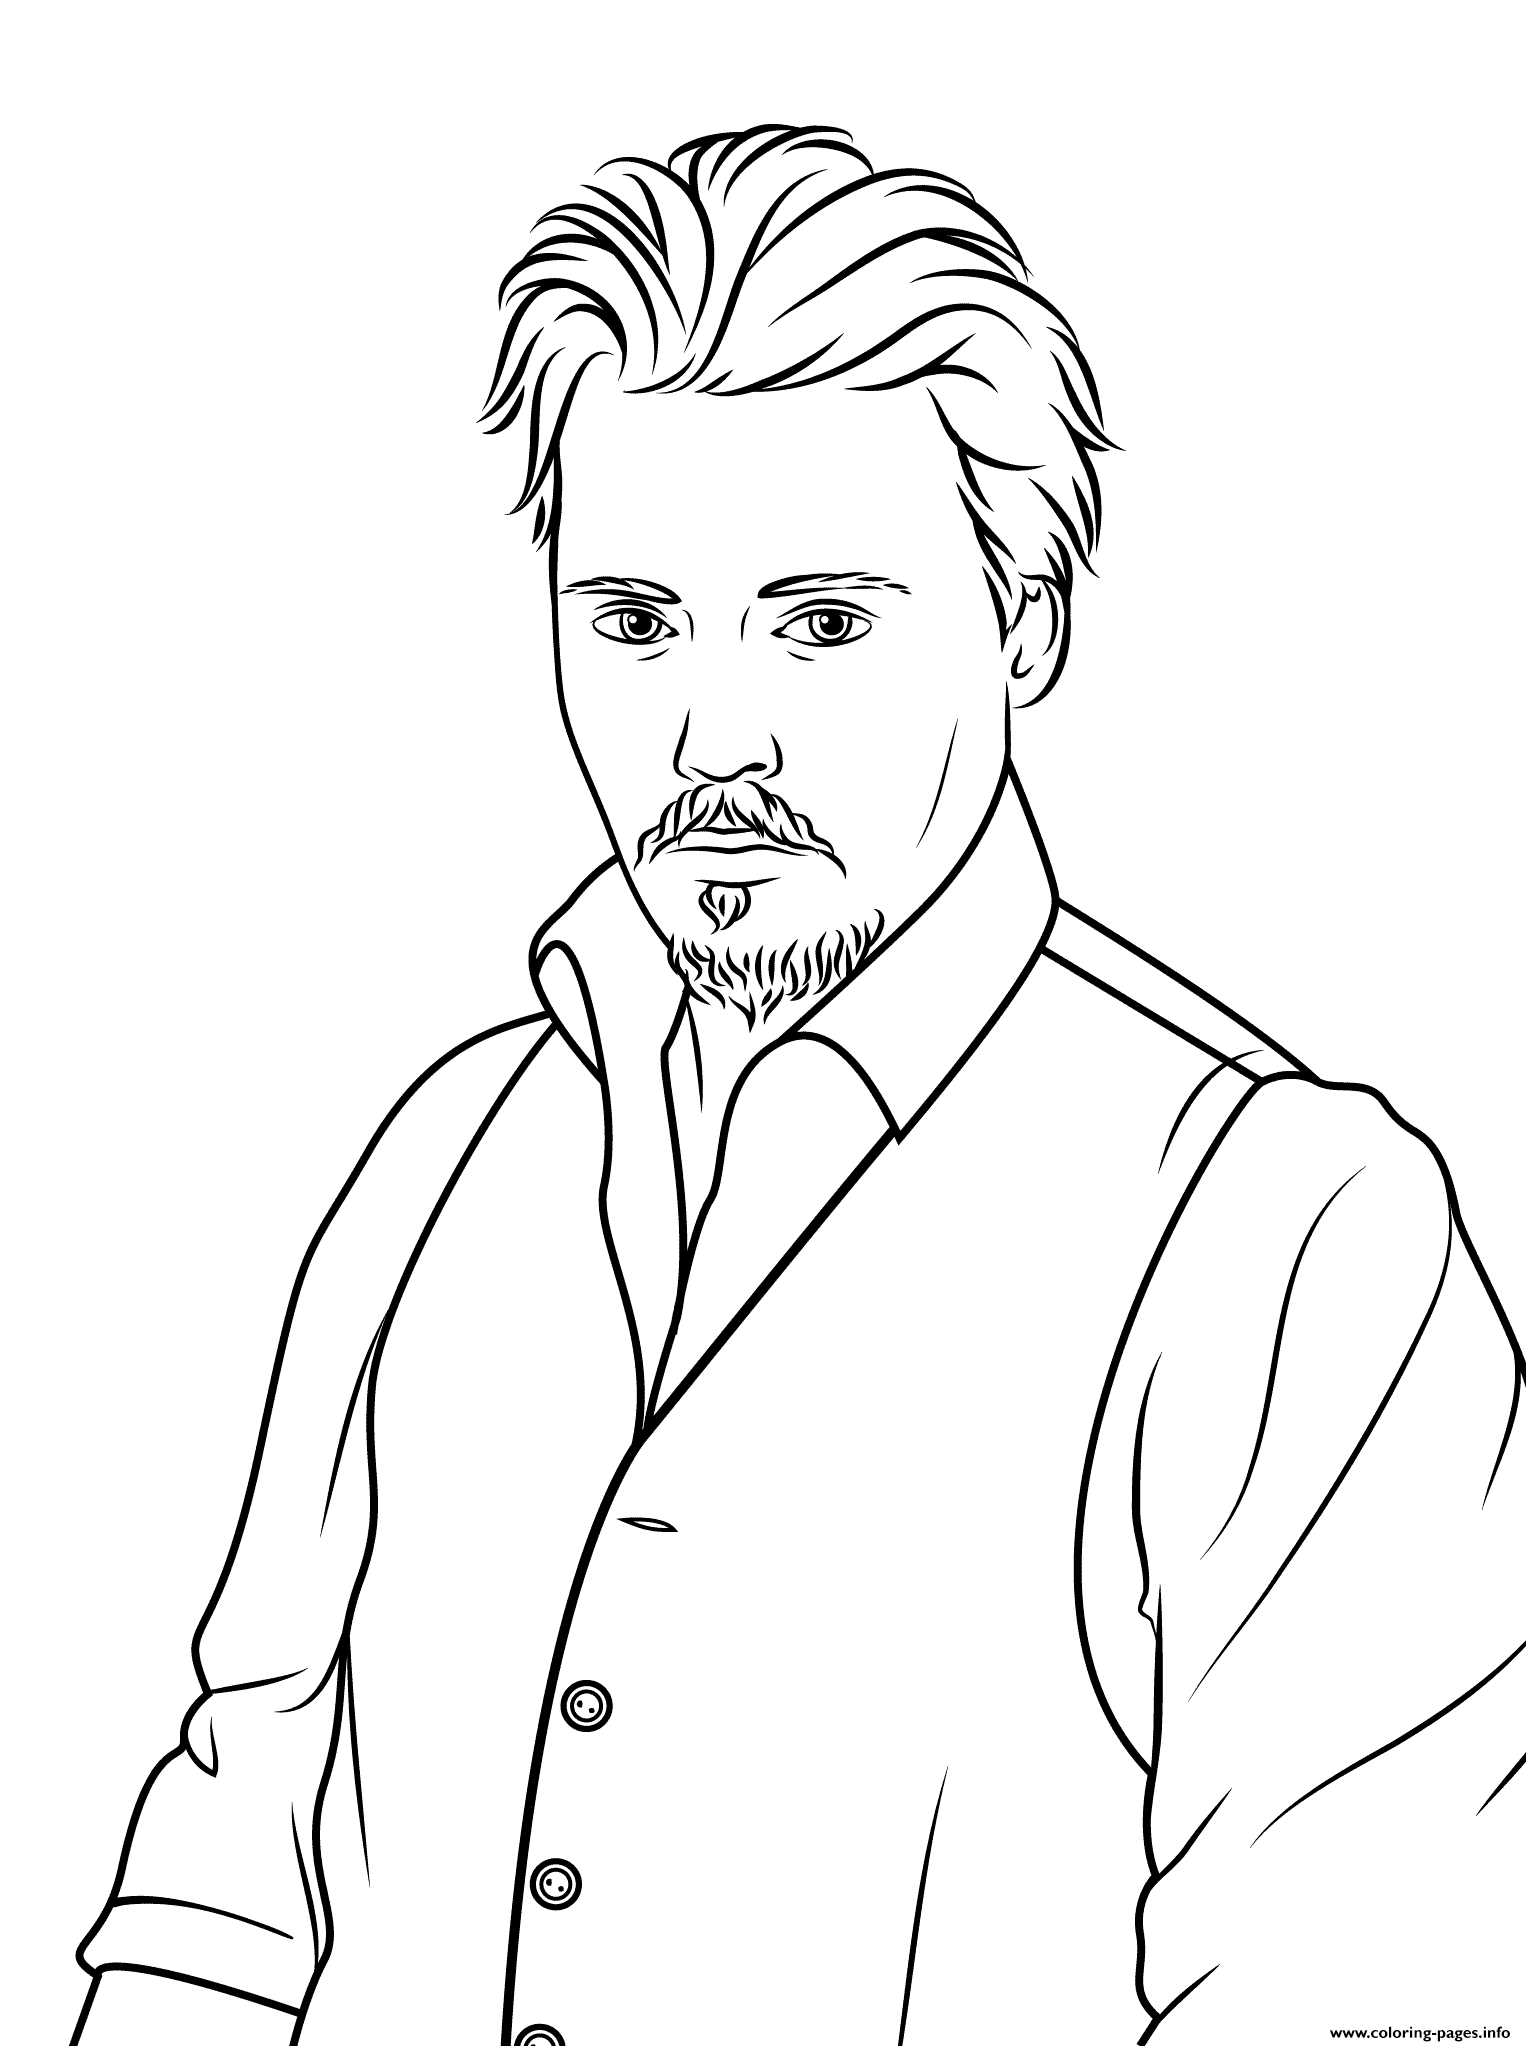 johnny depp celebrity coloring pages print download 38 prints - Celebrity Coloring Pages Print